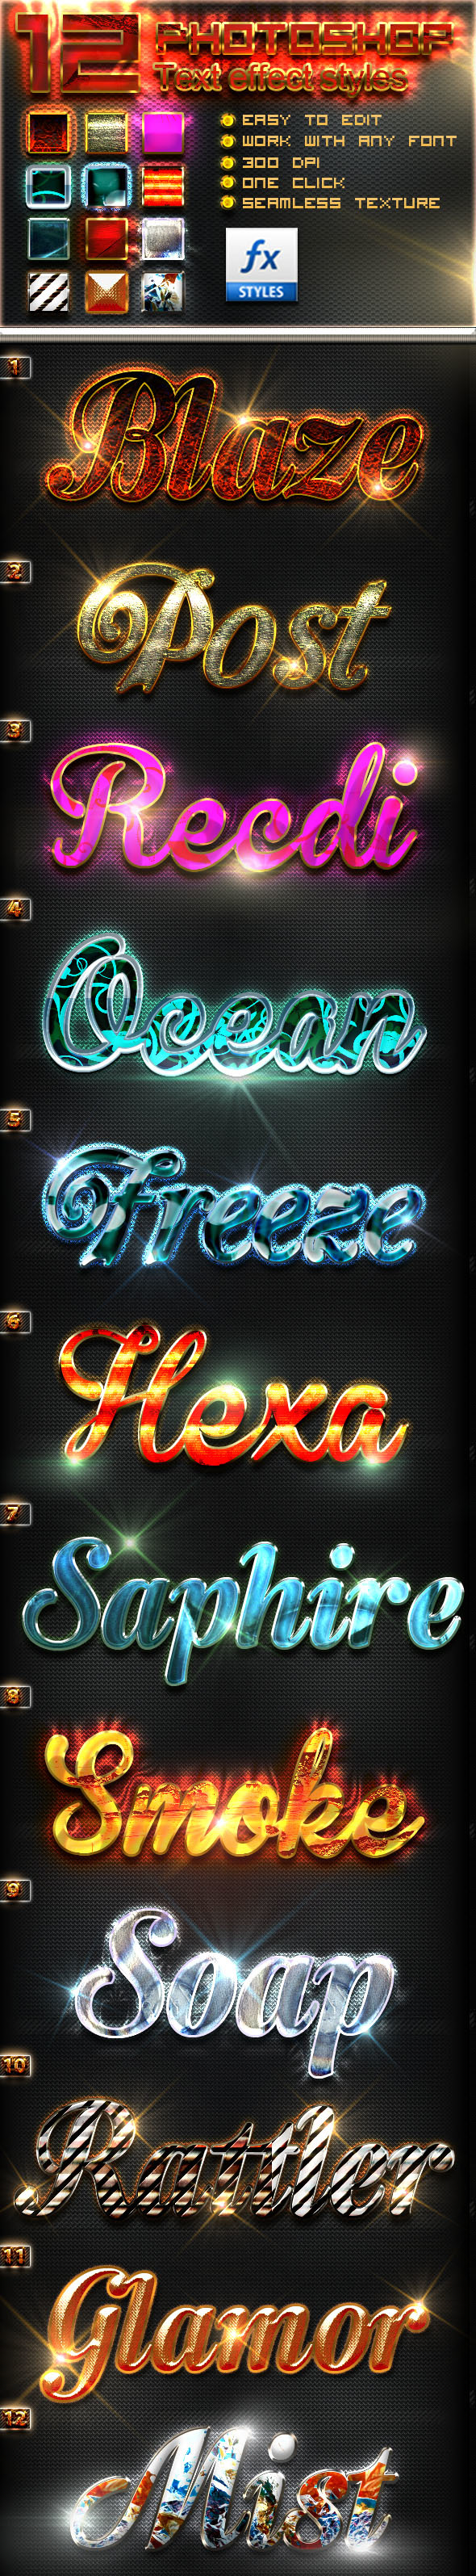 New Photoshop Text Styles vol 9 - Text Effects Styles